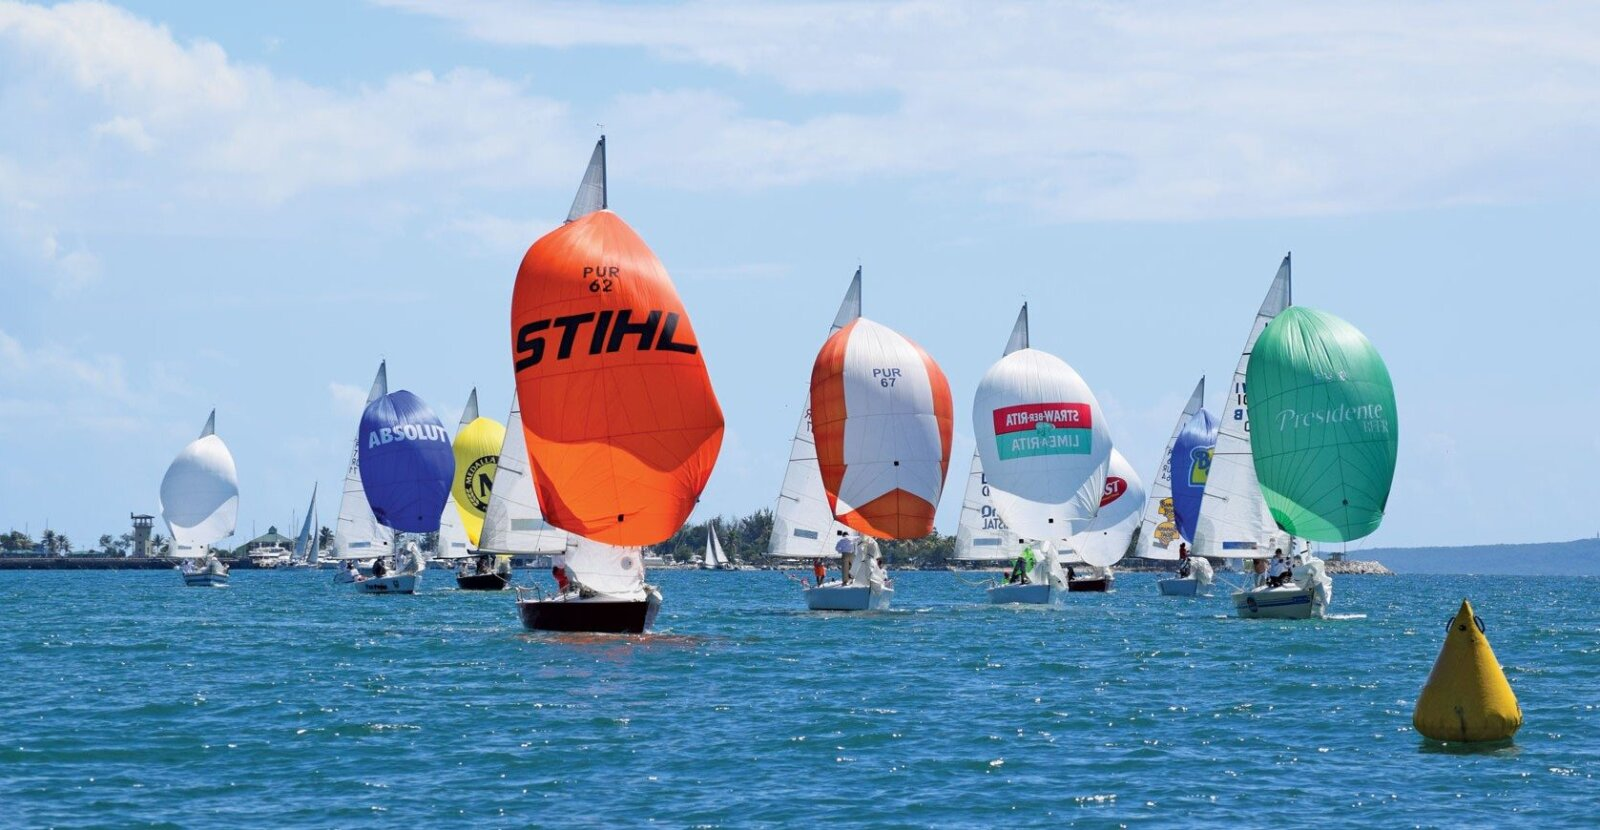 Discover the Caribbean: IC 24s, the largest fleet in the regatta, race to the gate. Photo by Maria Fernanda Rodriguez